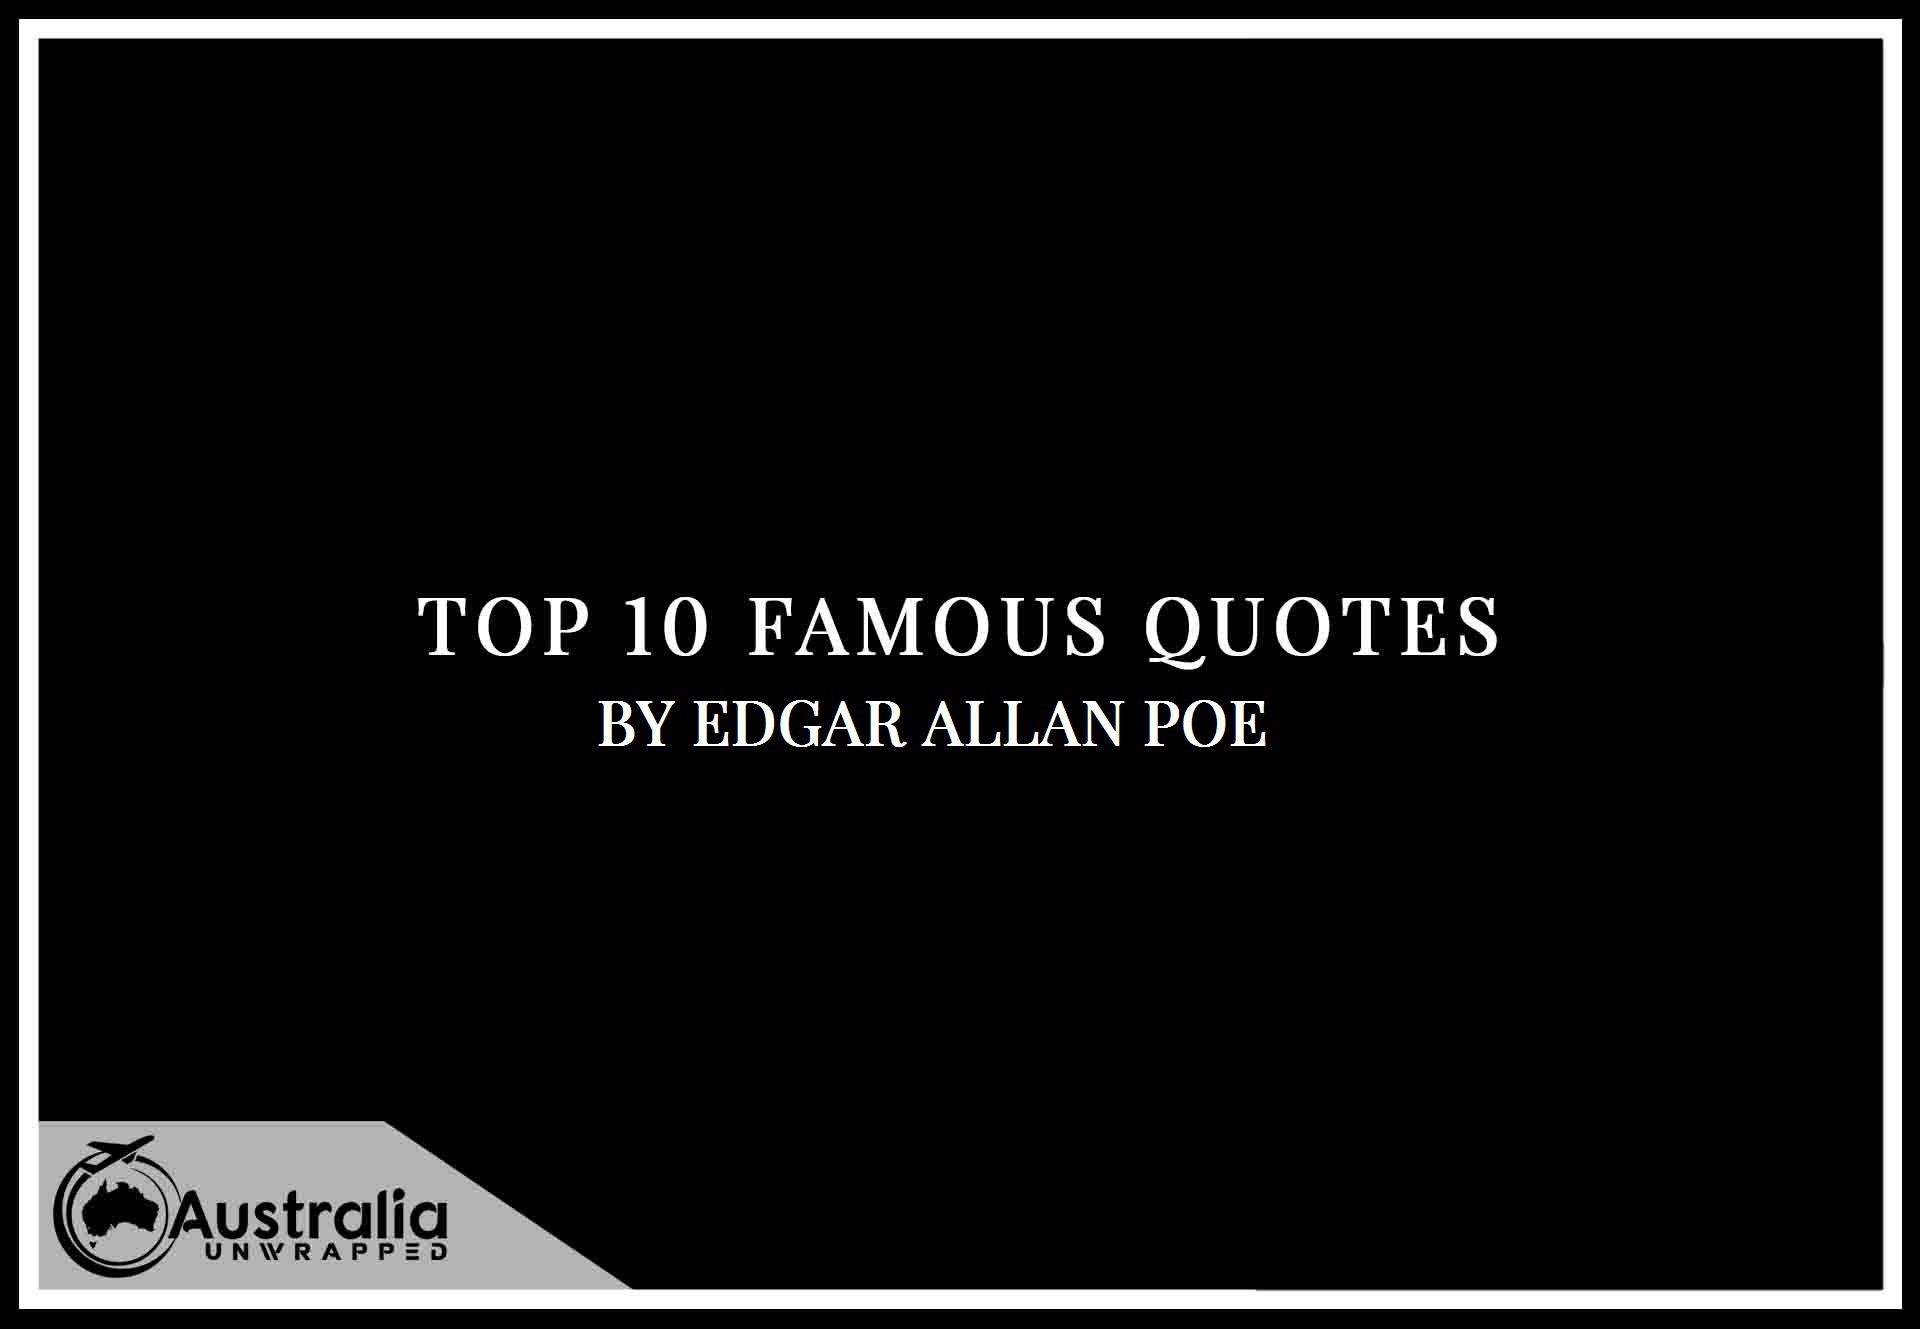 Edgar Allan Poe's Top 10 Popular and Famous Quotes